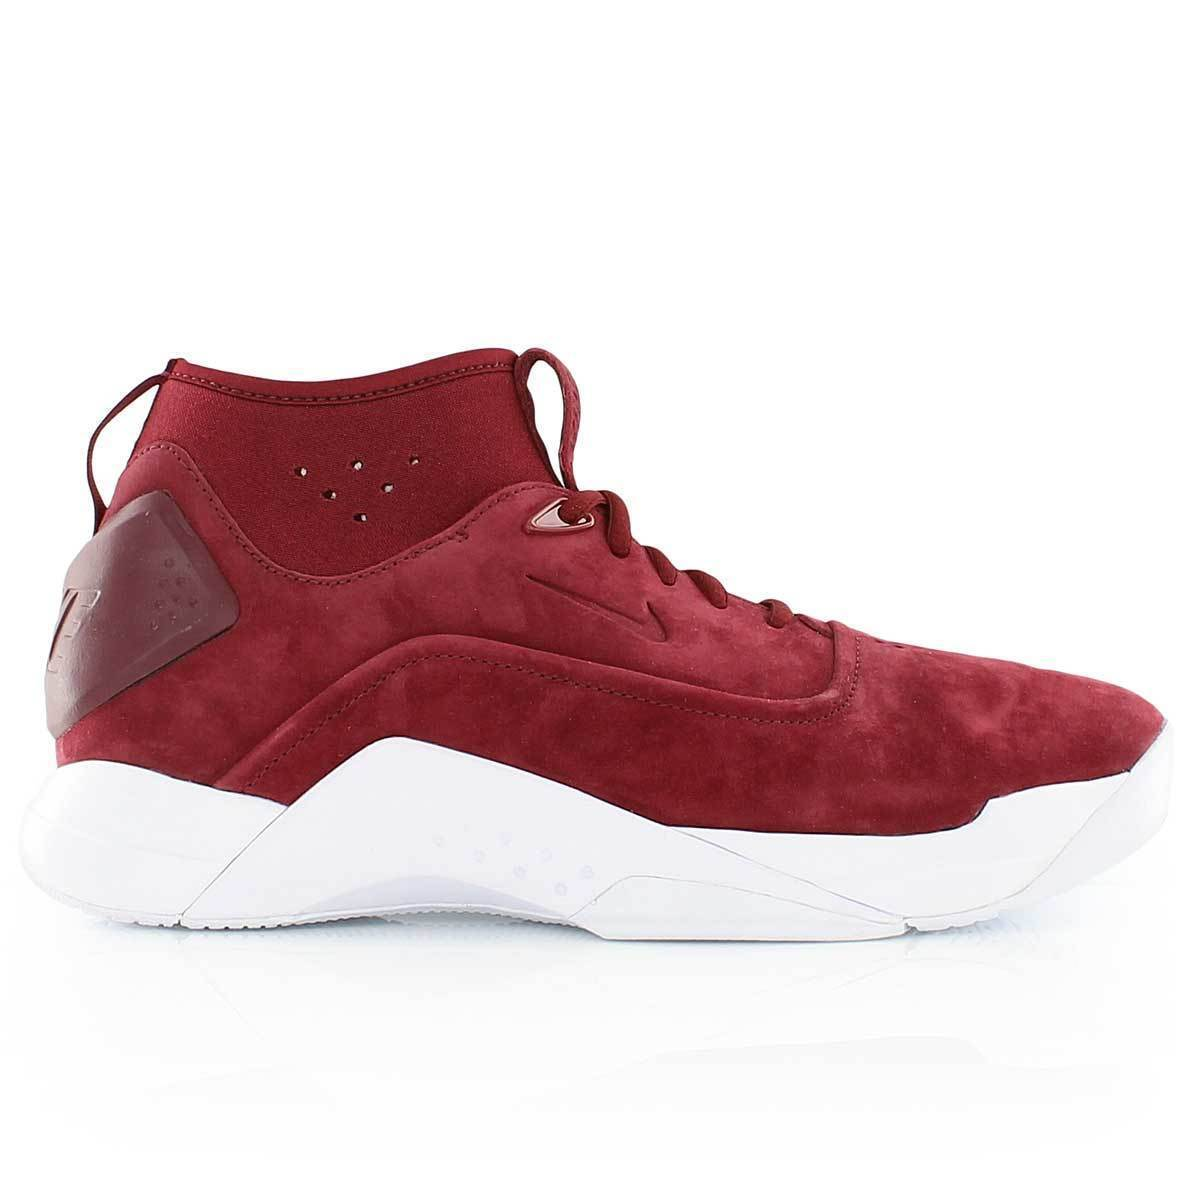 Cheap and beautiful fashion NEW Nike Hyperdunk Low Crft Suede Basketball Shoes, 880881 600 Mens Price reduction